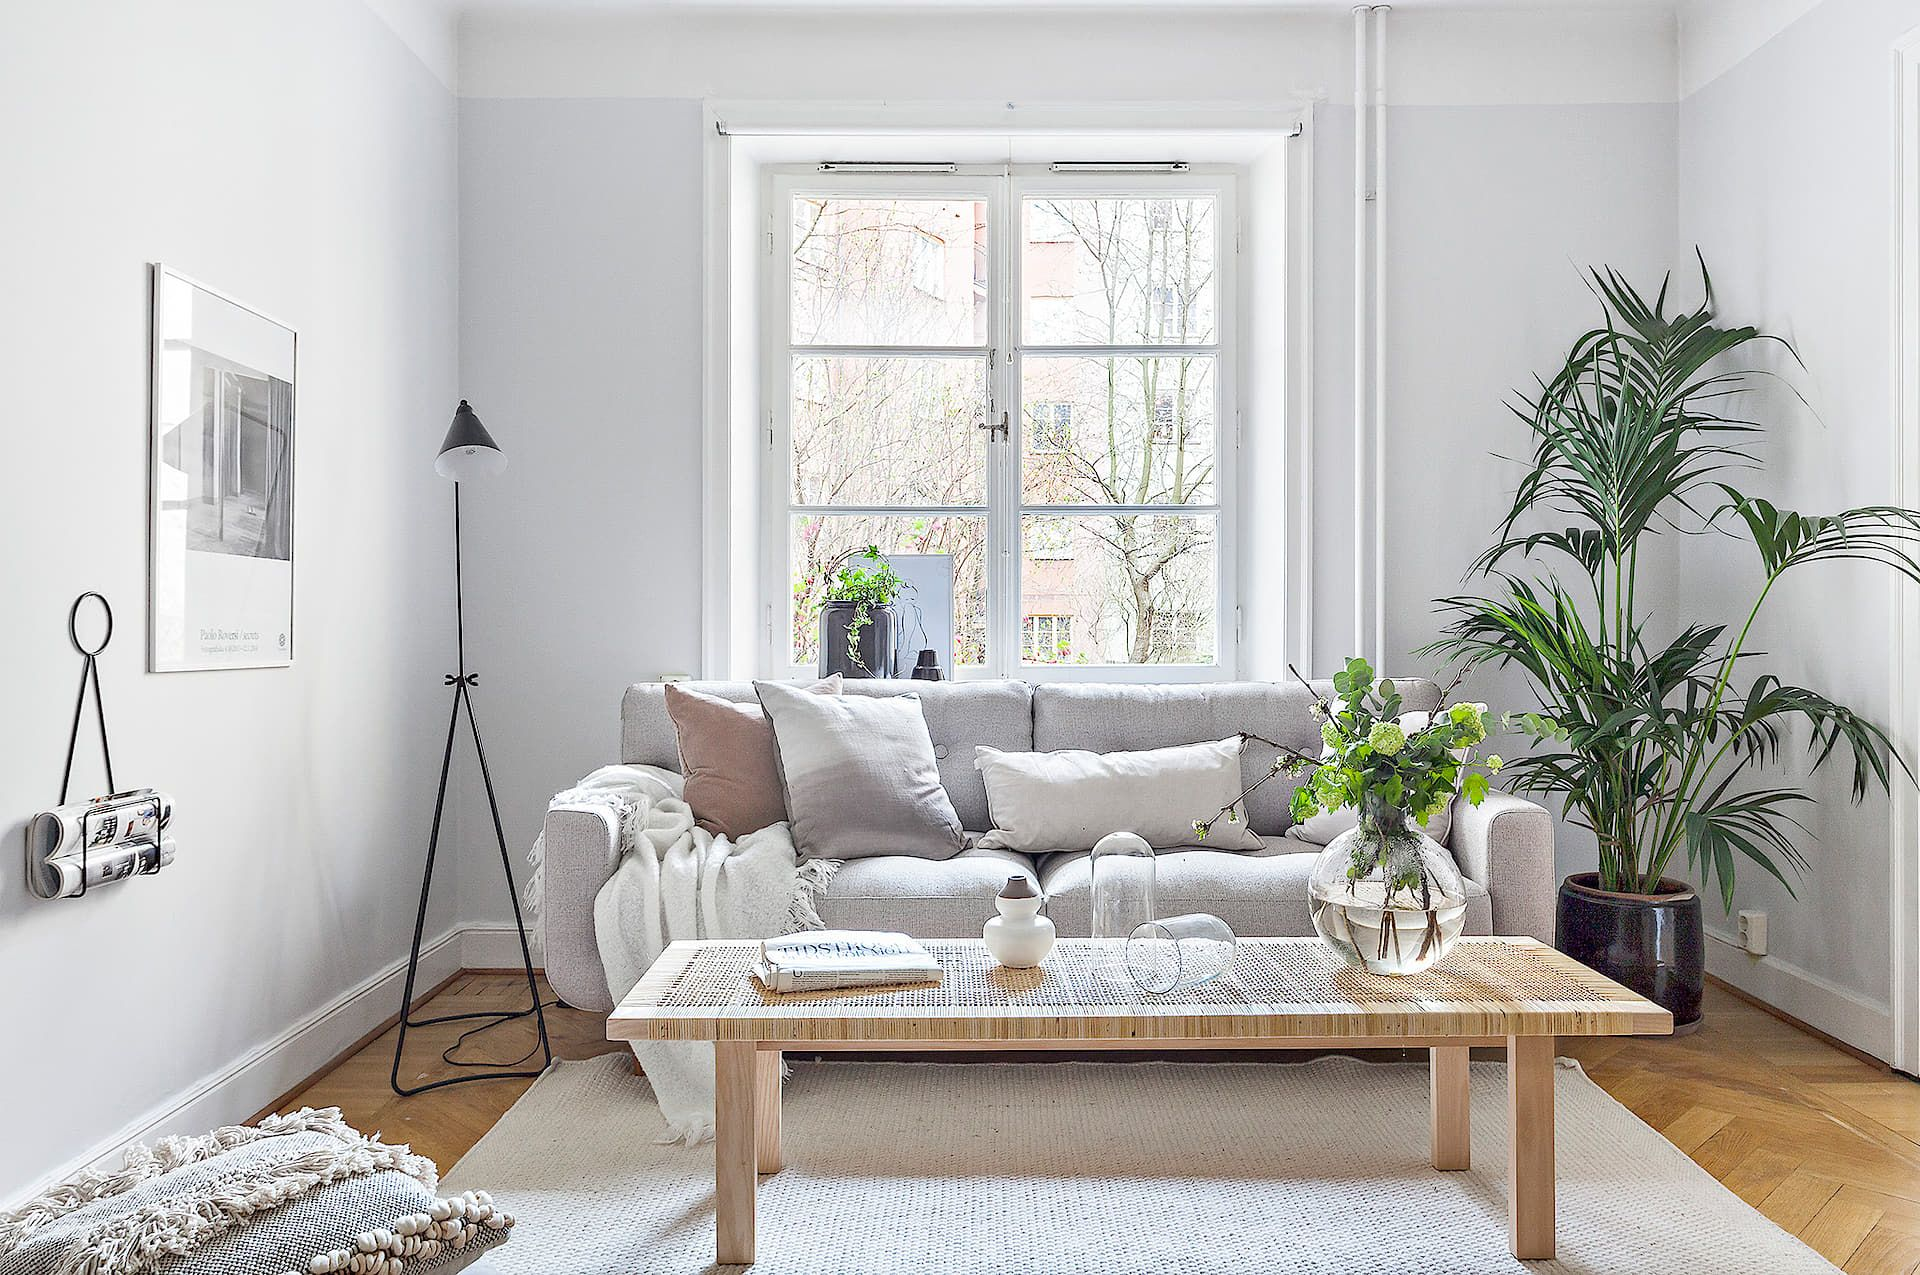 Ikea Stockholm 2017 Bench As A Coffee Table Ikea Vardagsrum